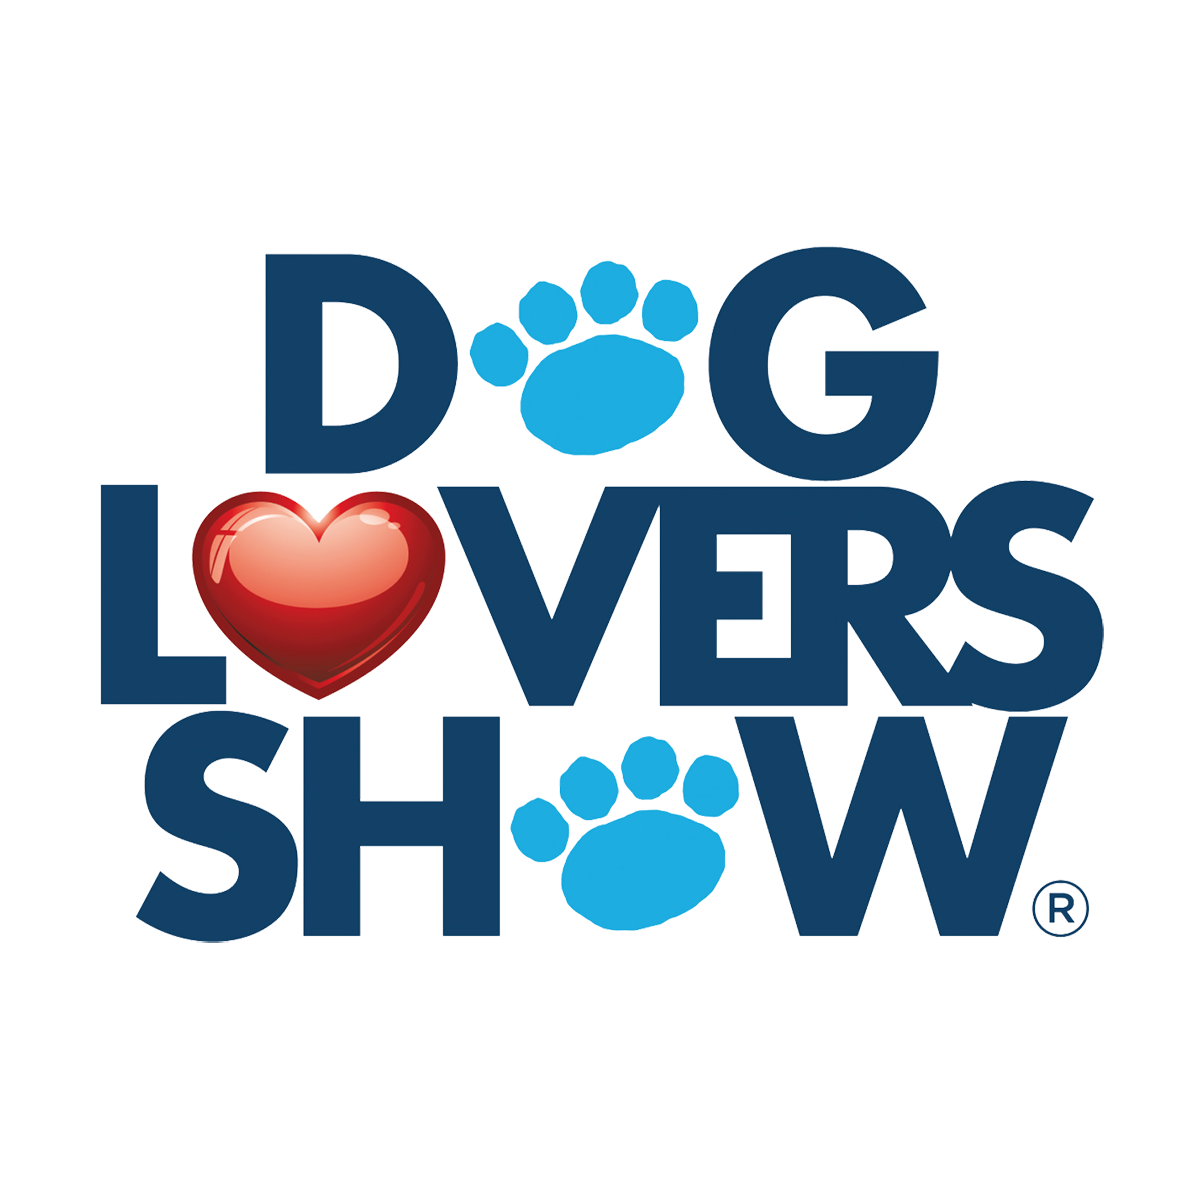 DogLoversShow.png